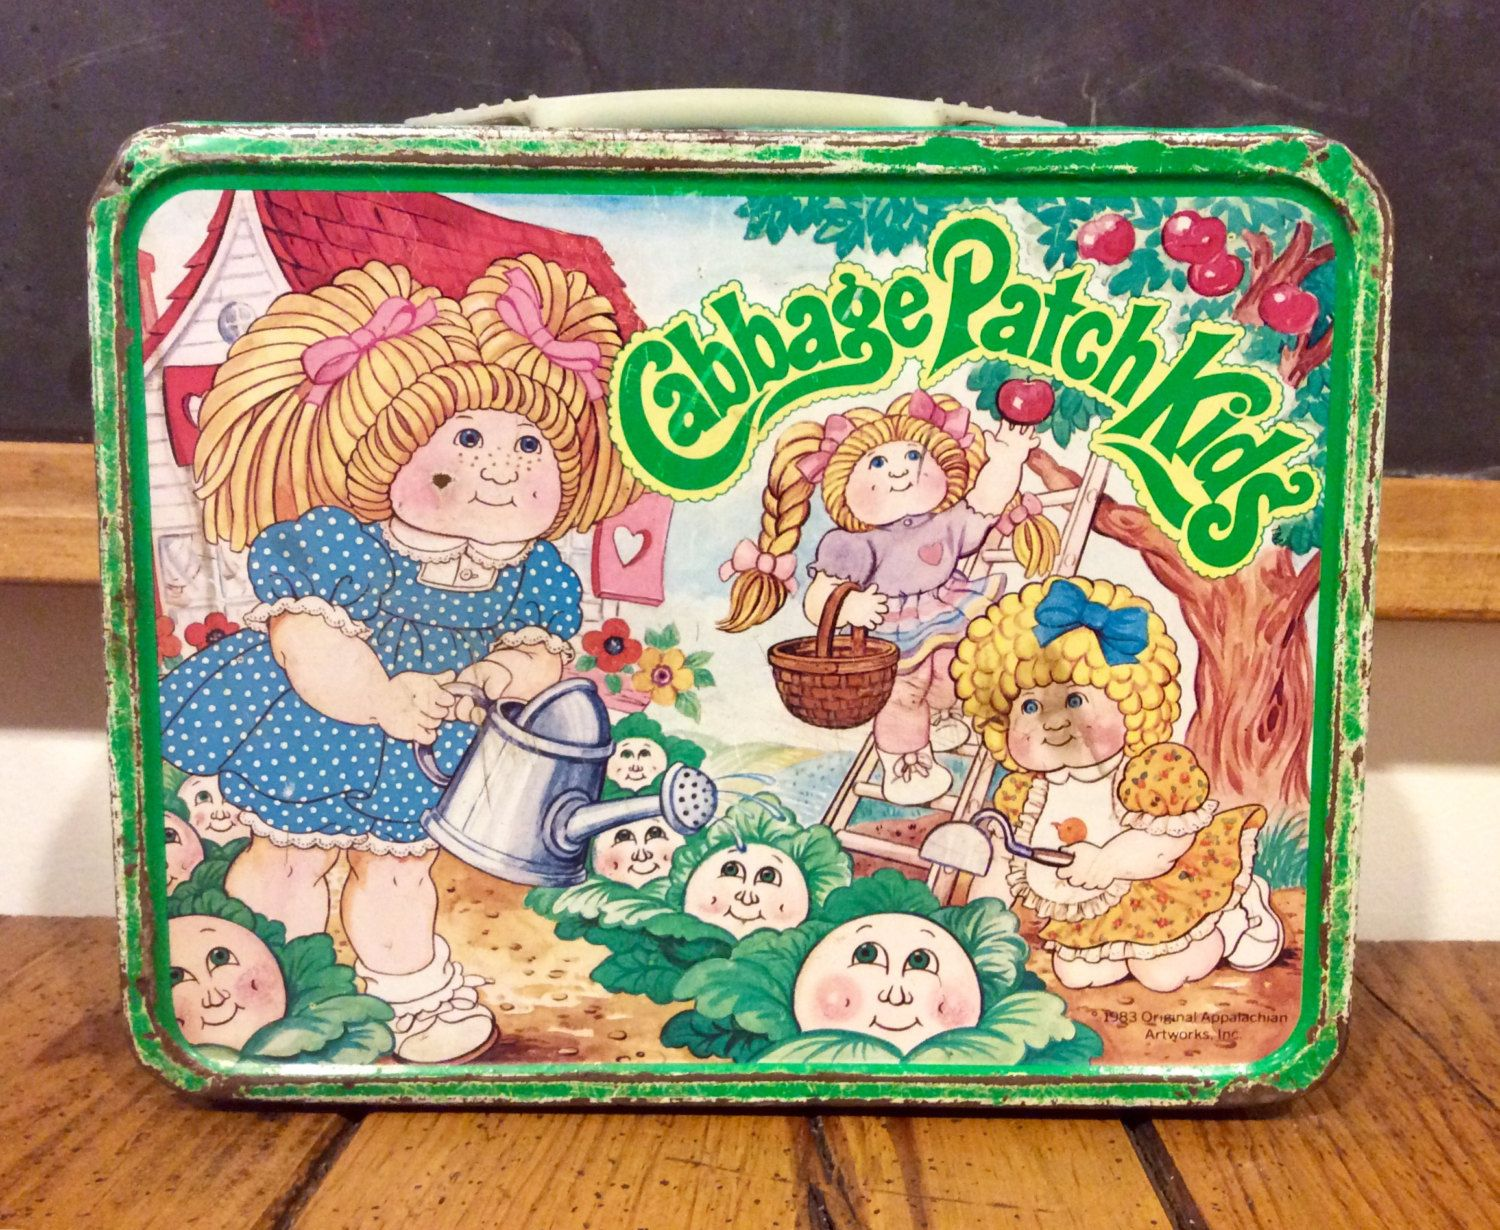 1983 Cabbage Patch Kids Metal Lunch Box Cabbage Patch Etsy Vintage Lunch Boxes Cabbage Patch Kids Metal Lunch Box